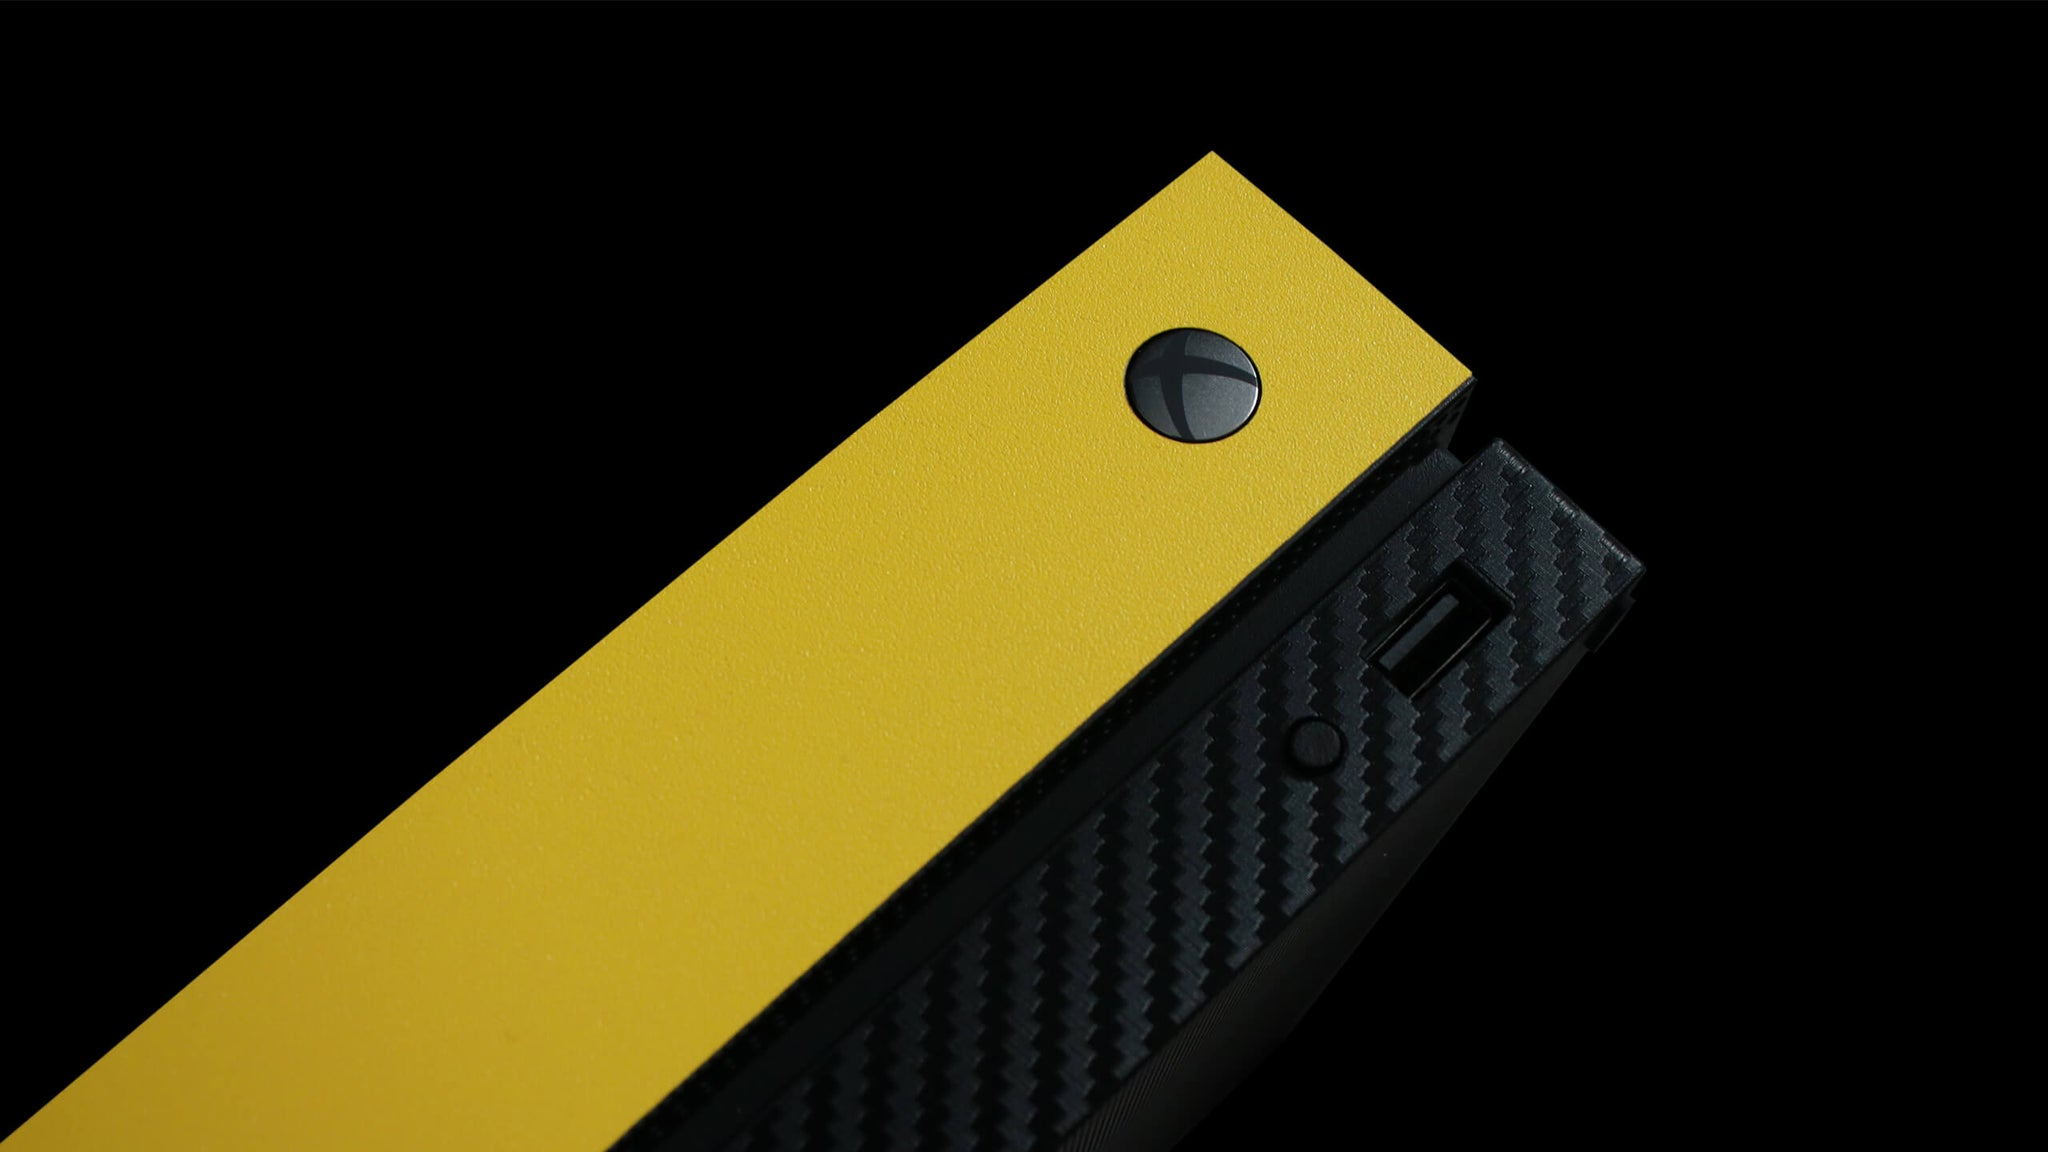 Xbox One X True Colour Yellow Skins